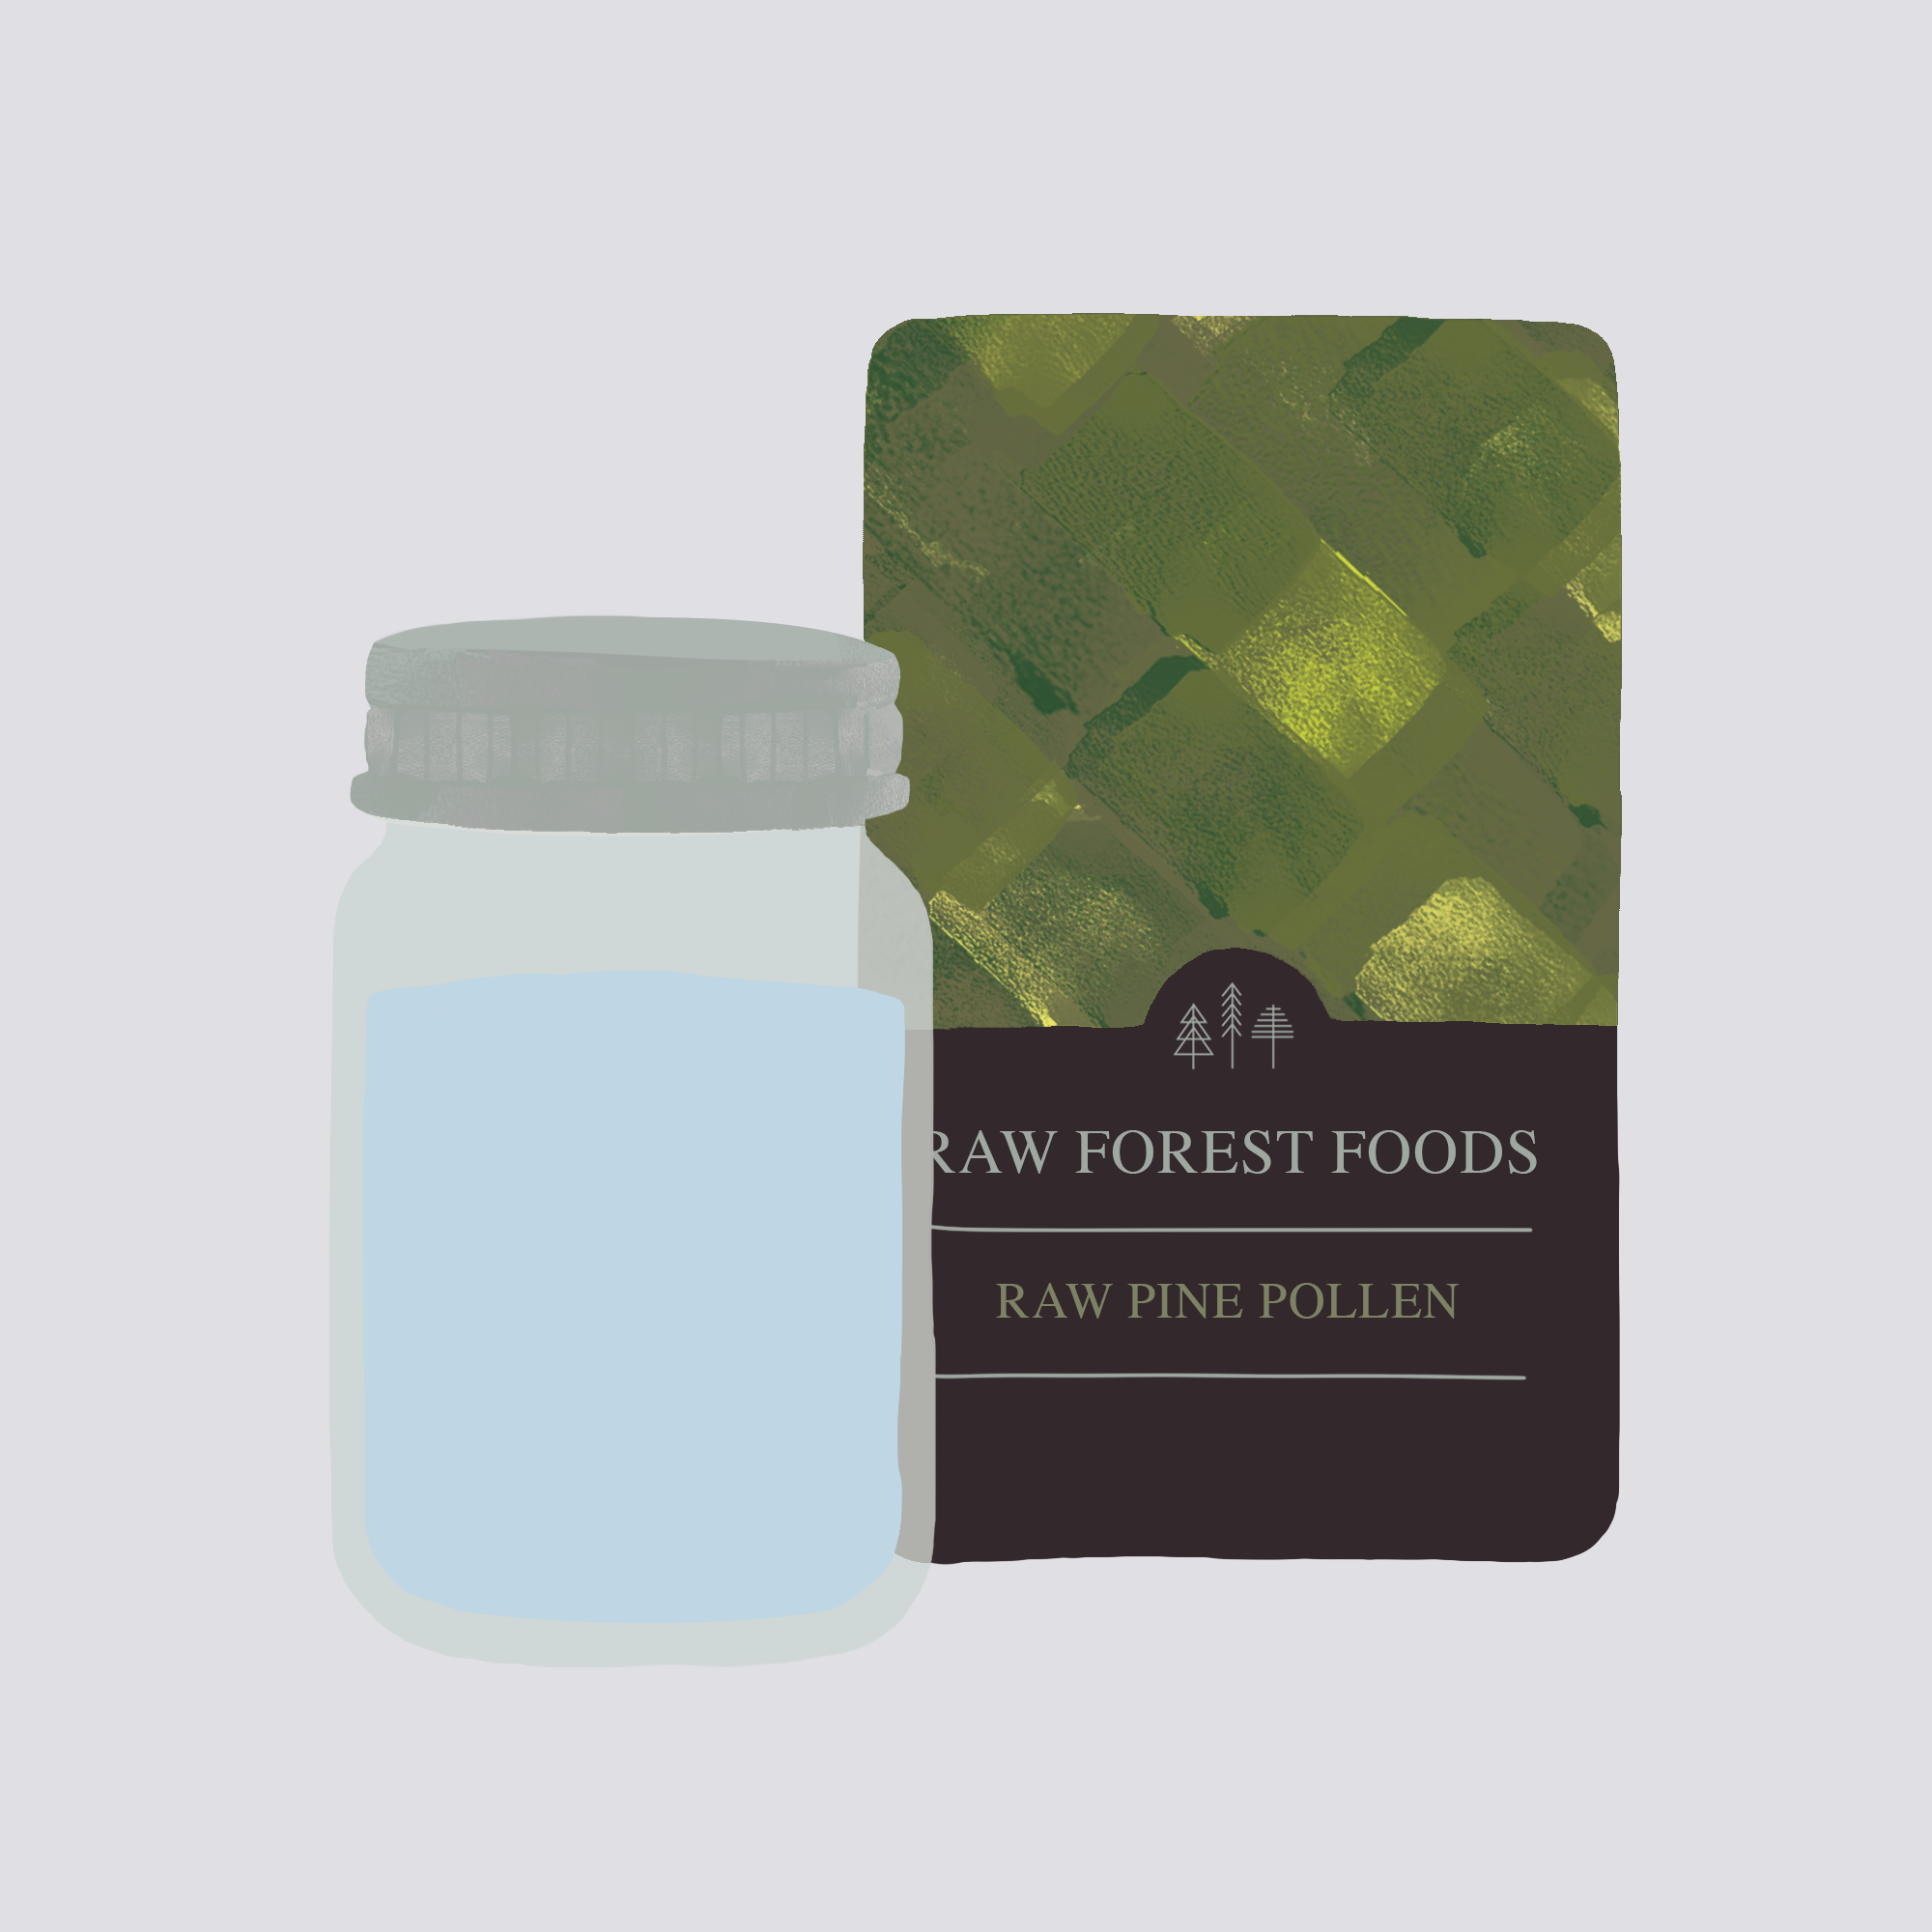 RAW Forest Foods Taking RAW Pollens